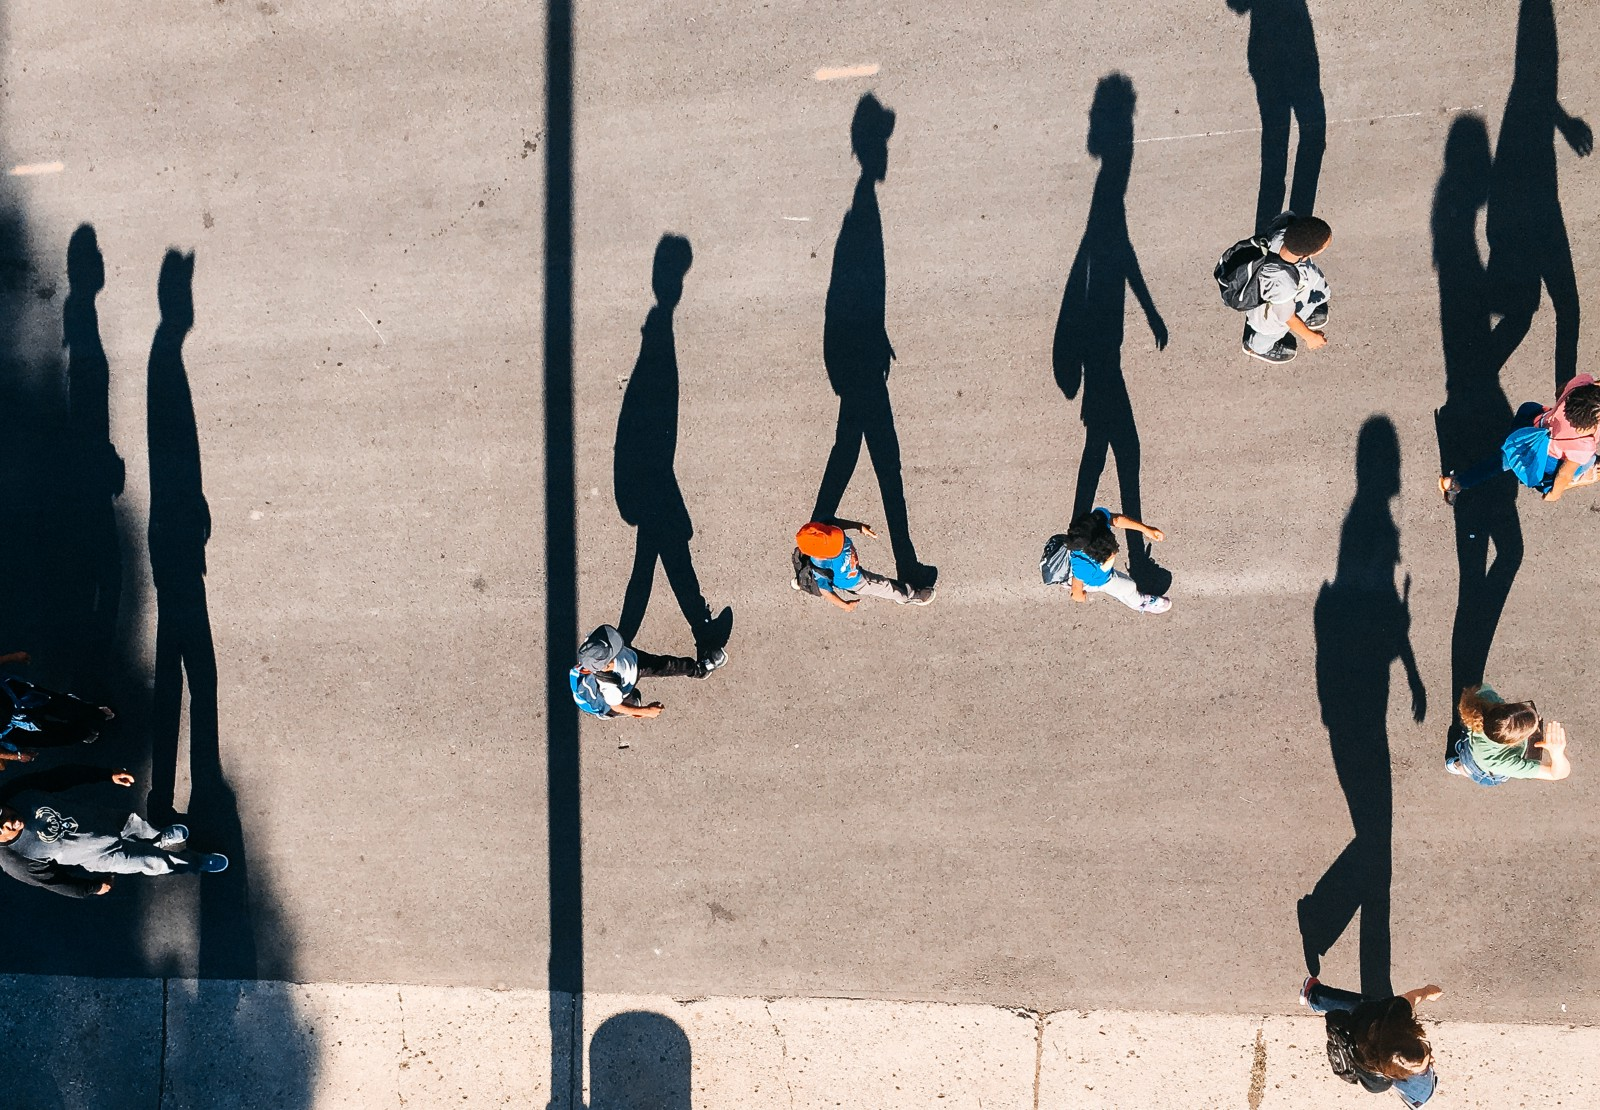 Top dpwn view of a line of people walkinf left to right on the picture. The sun is low in the sky causing their shadows to spread out beside them. Making it look like the shadows are walking down the road in a two dimensional image.